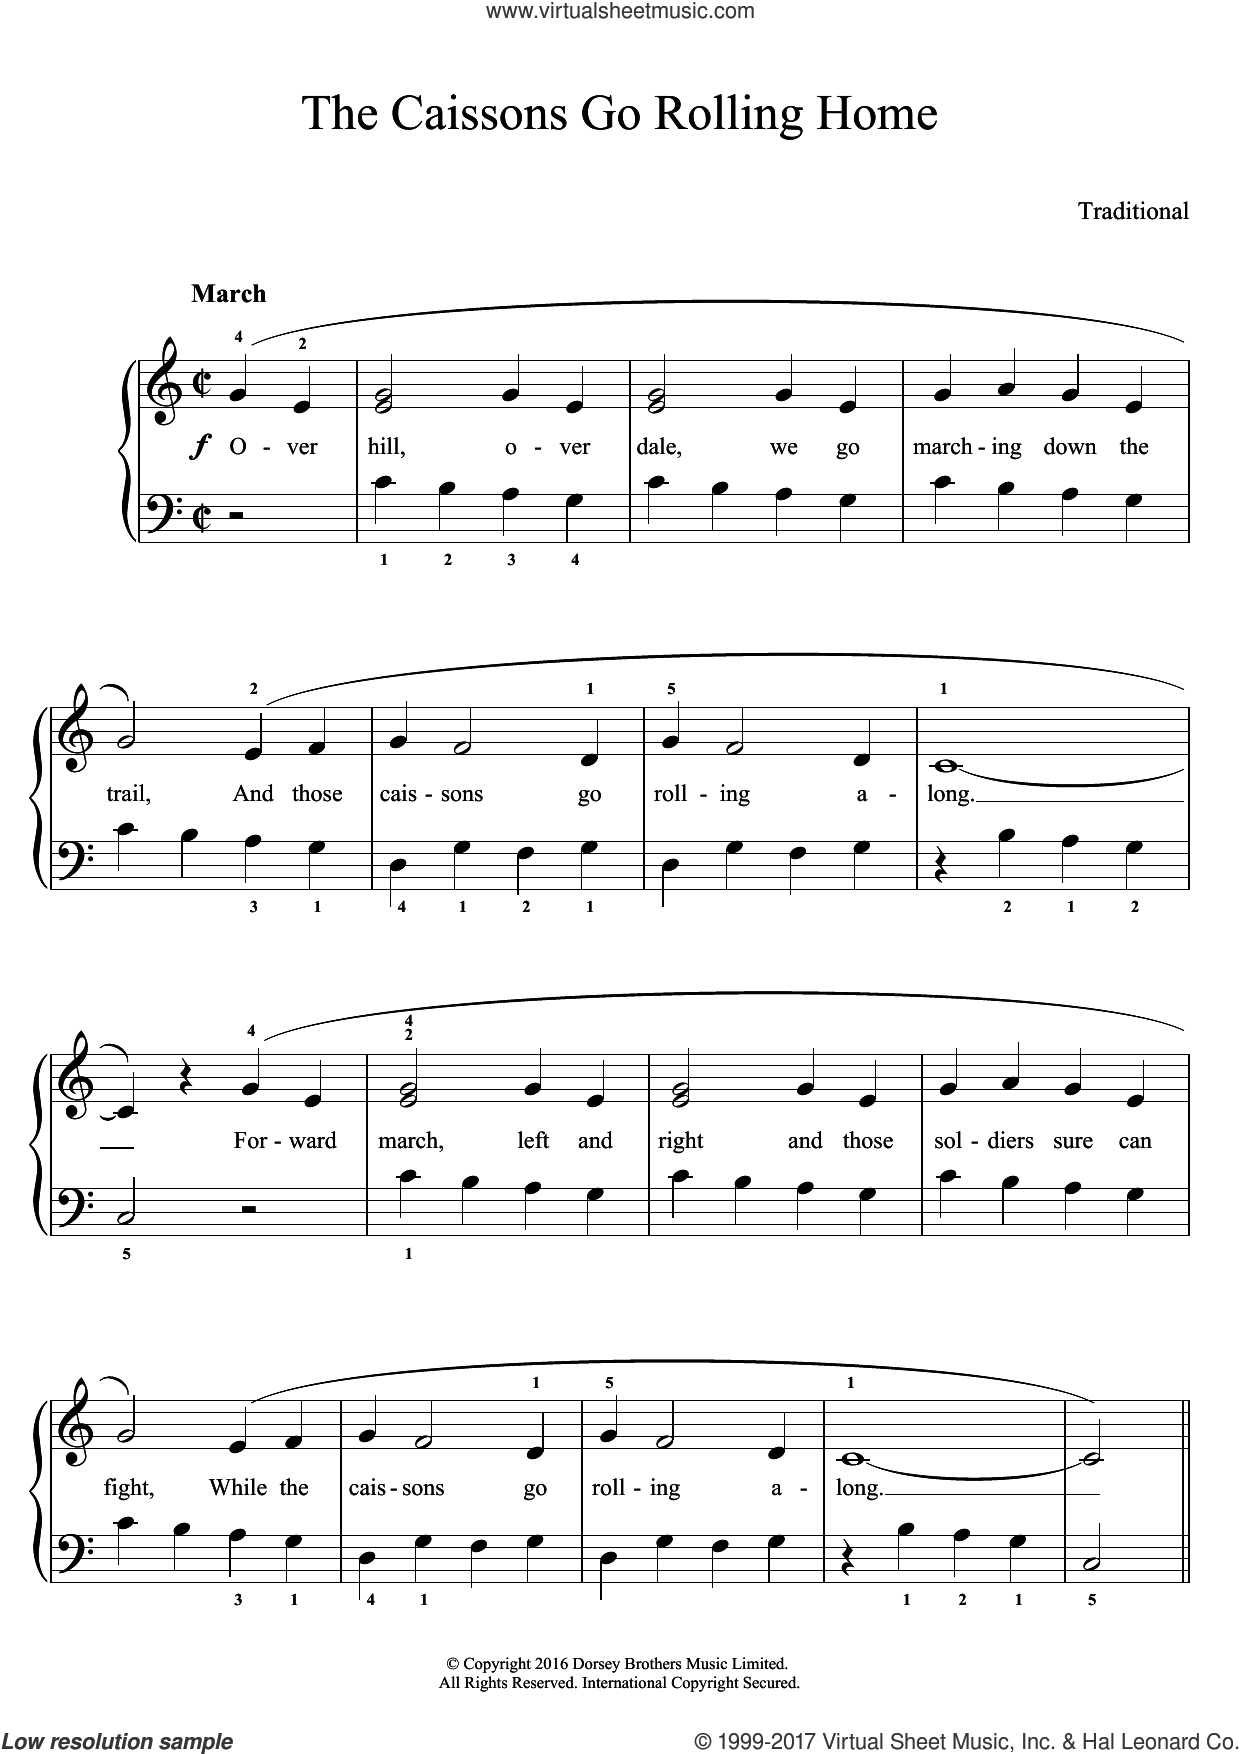 The Caissons Go Rolling Home sheet music for piano solo, easy skill level